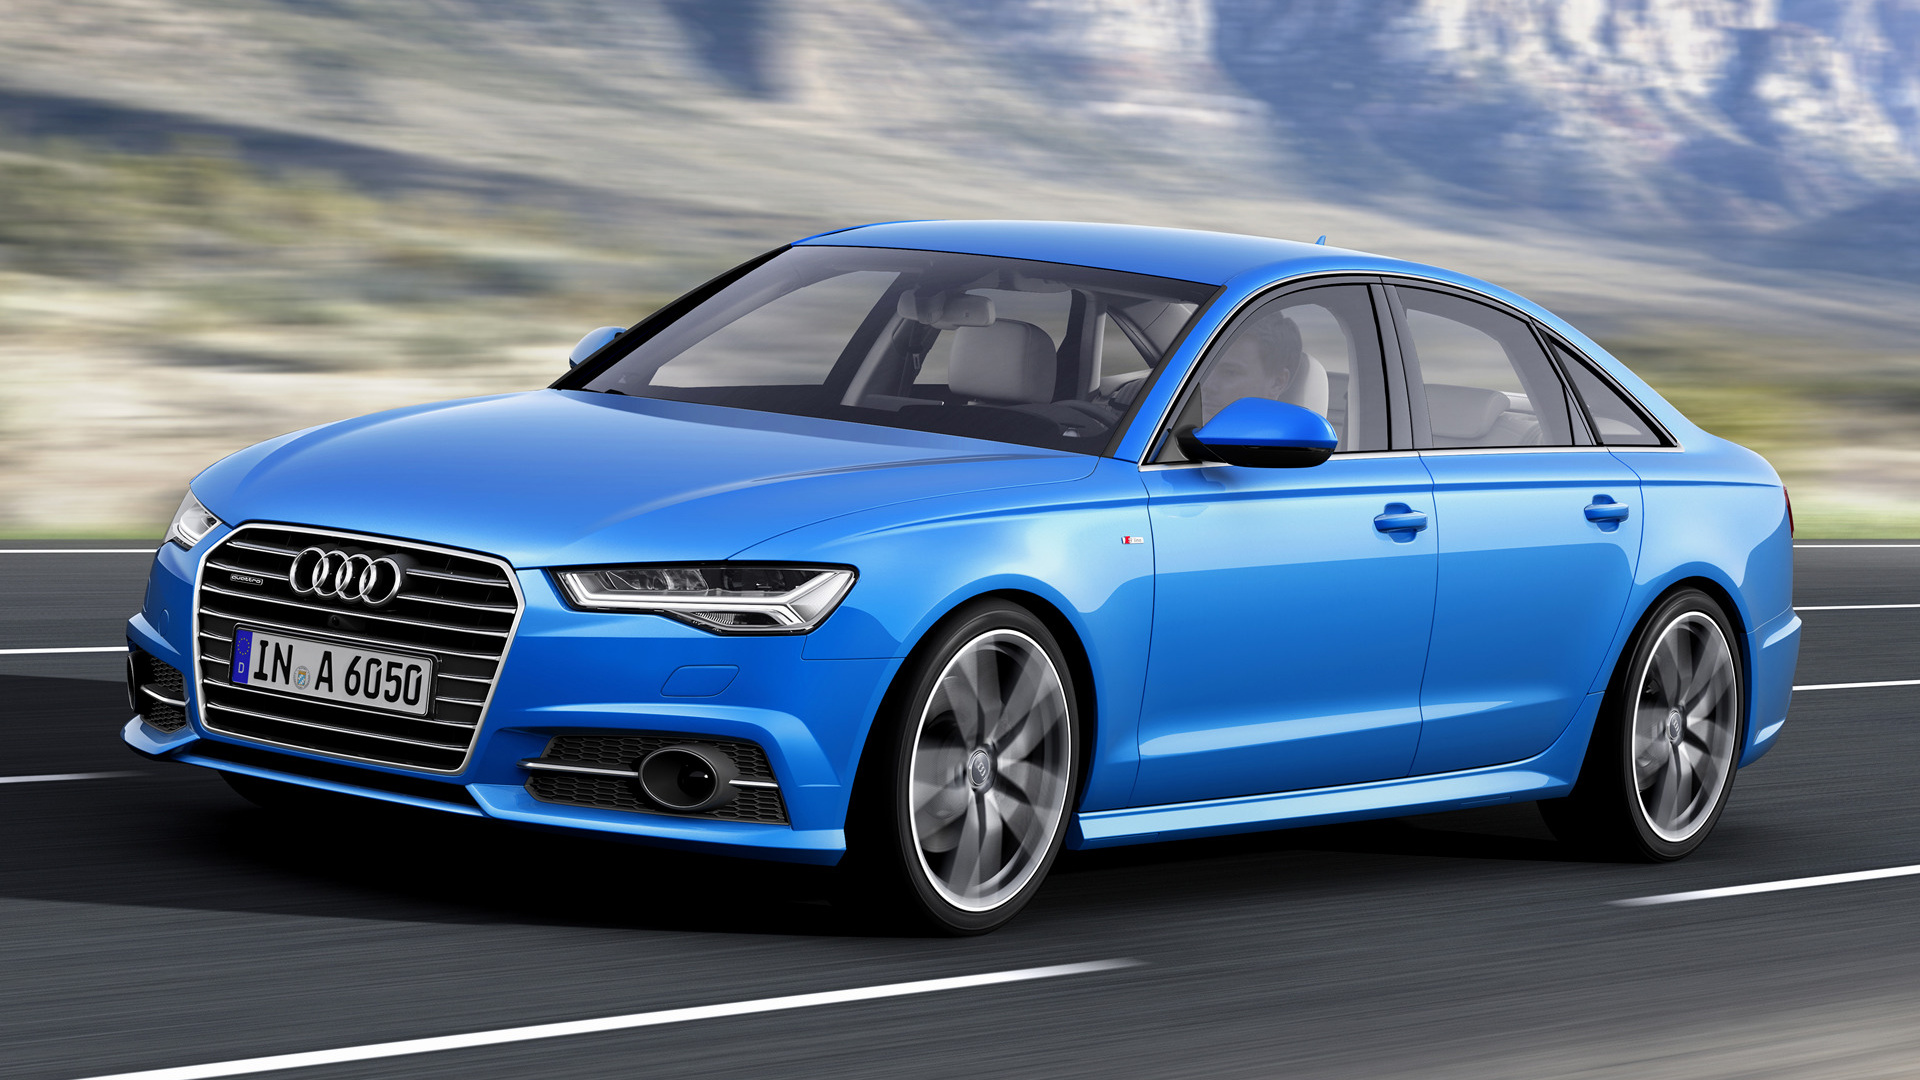 2014 Audi A6 Sedan S Line Wallpapers And Hd Images Car Pixel